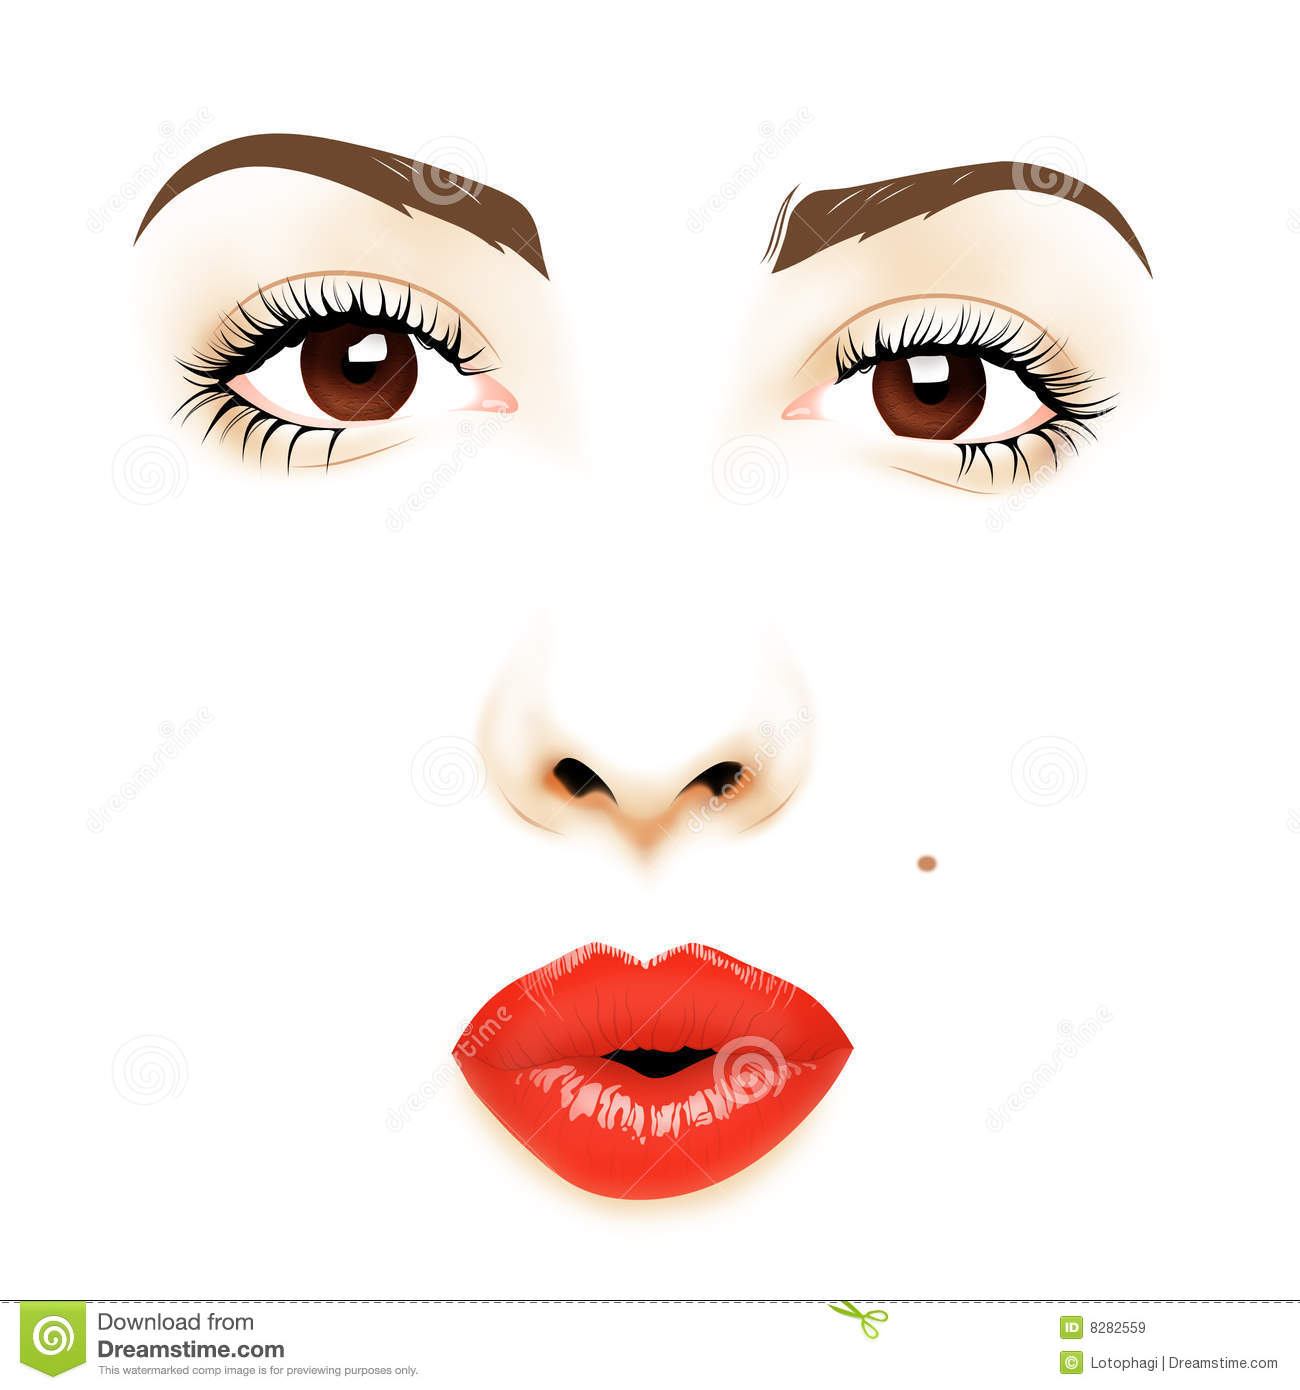 Face Illustration Royalty Free Stock Images